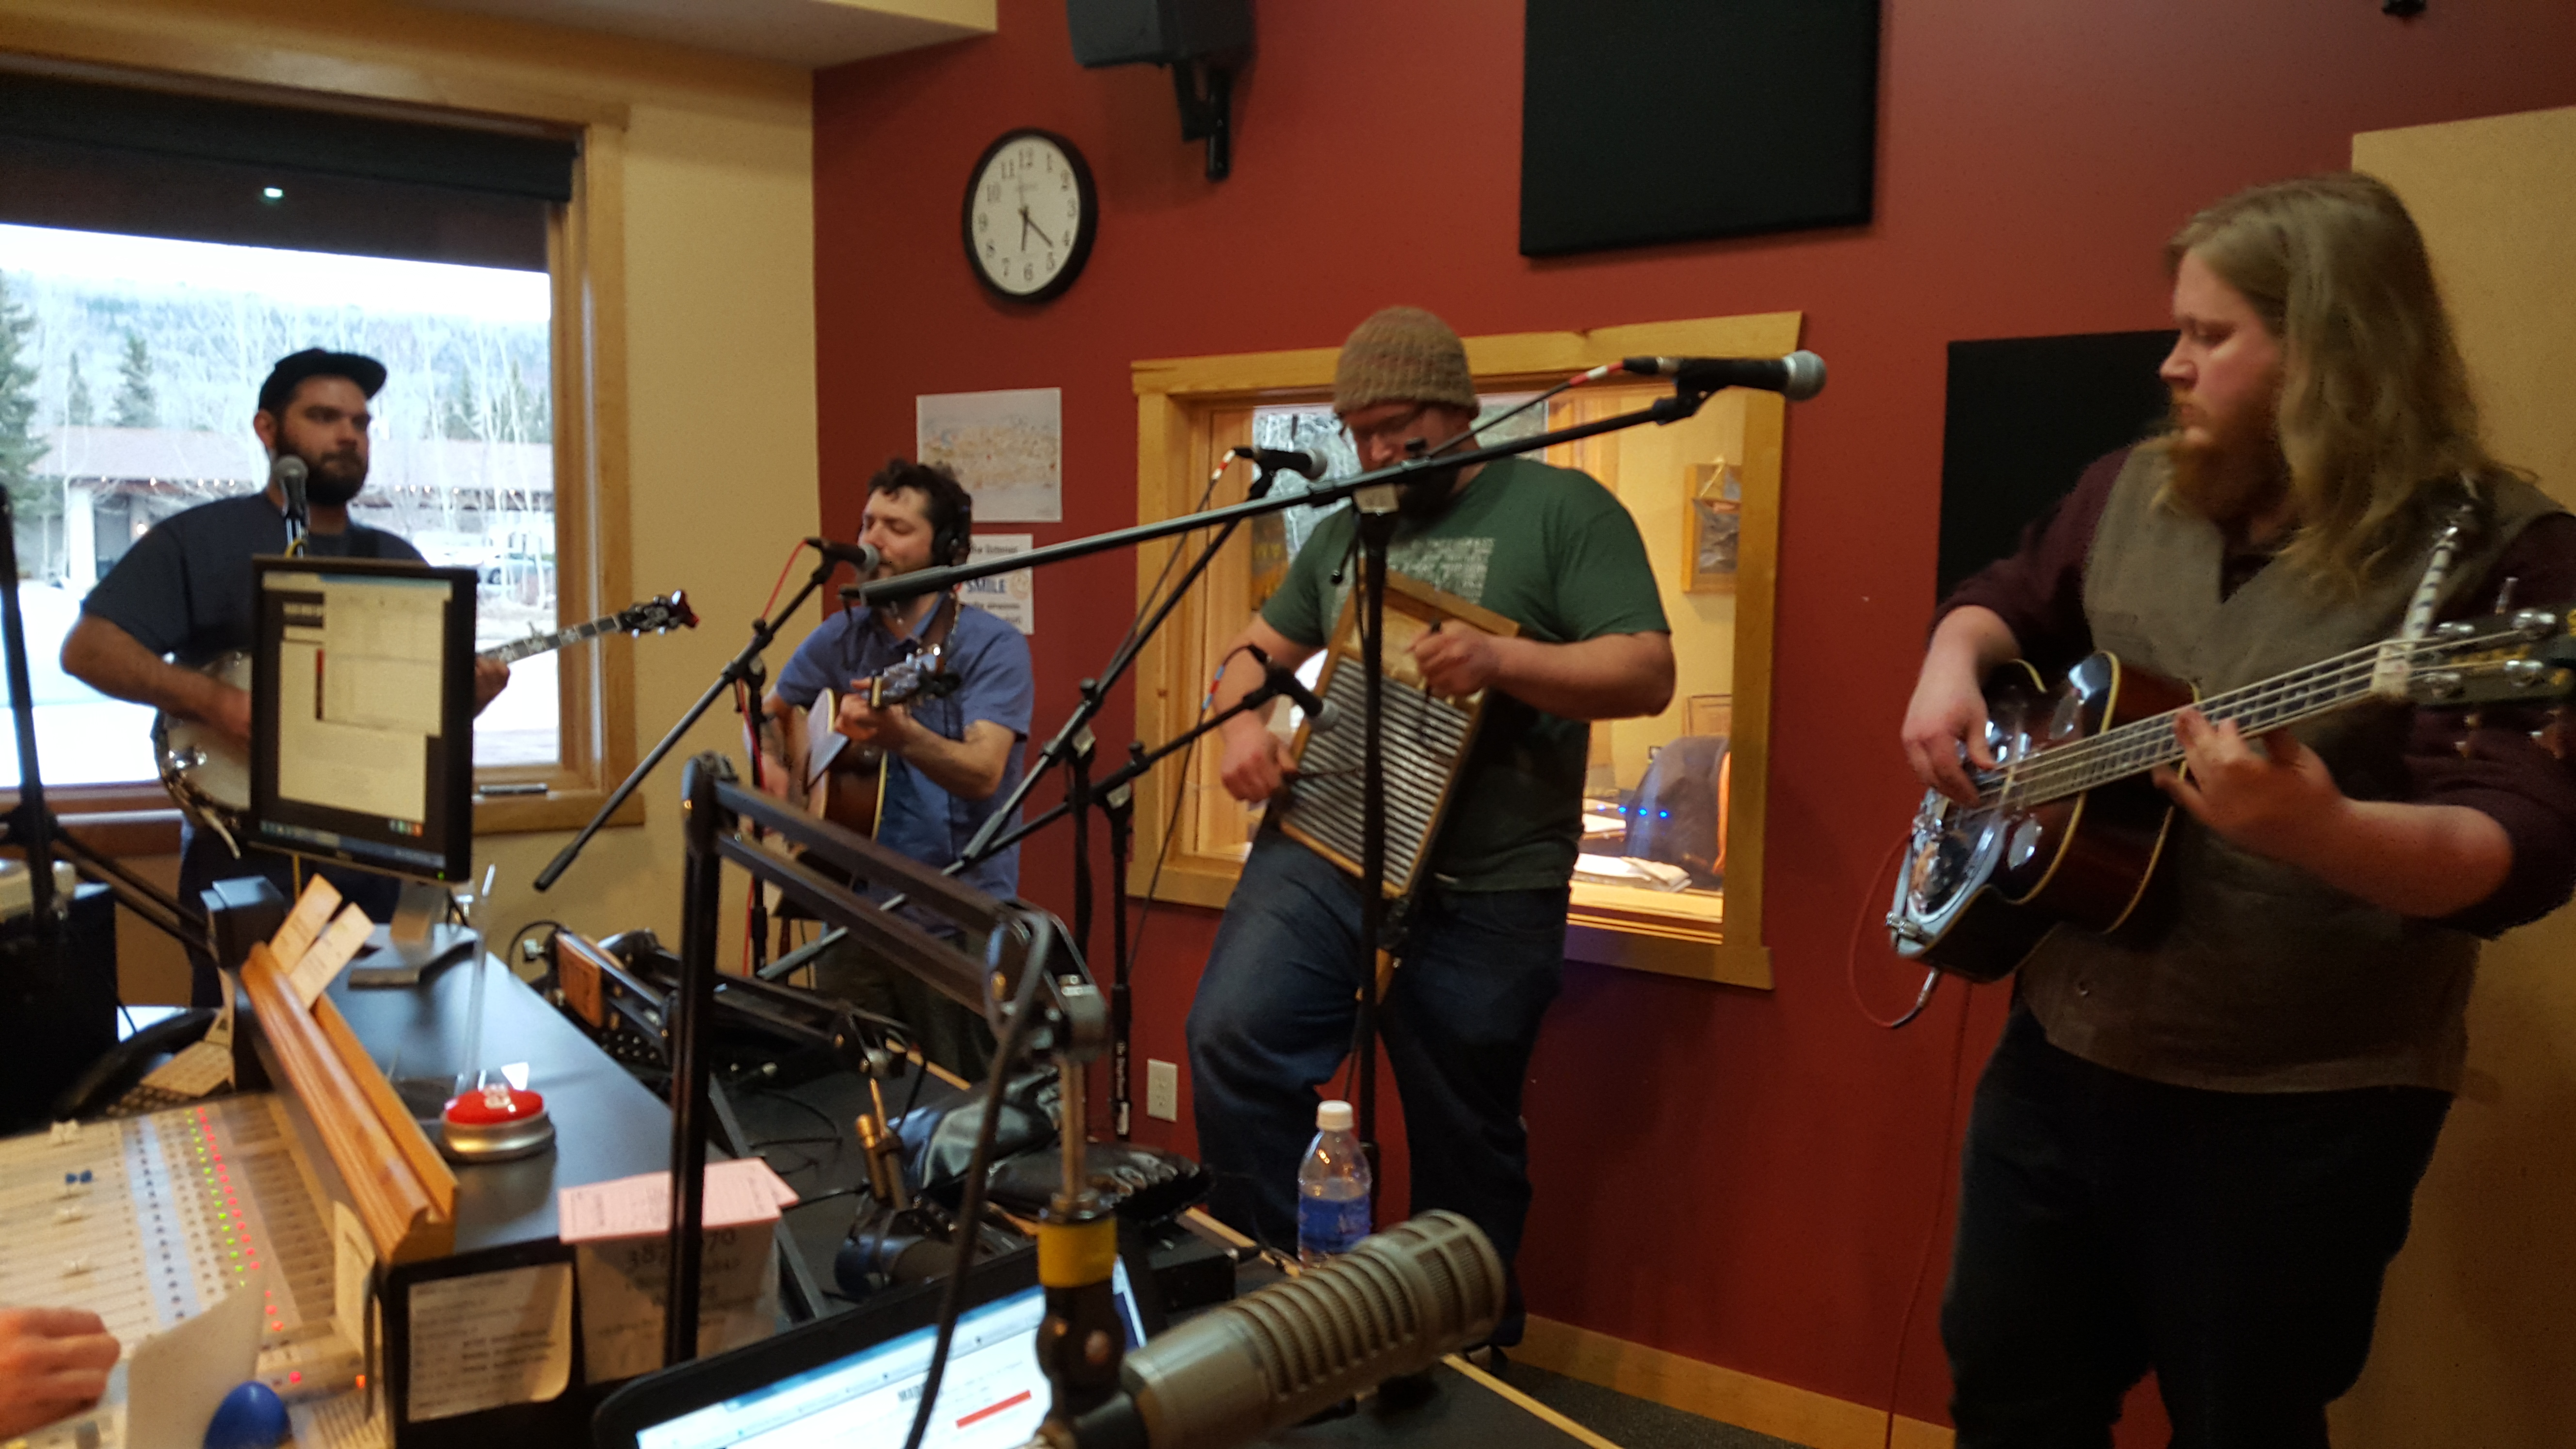 Black River Revue brings bluegrass to The Roadhouse